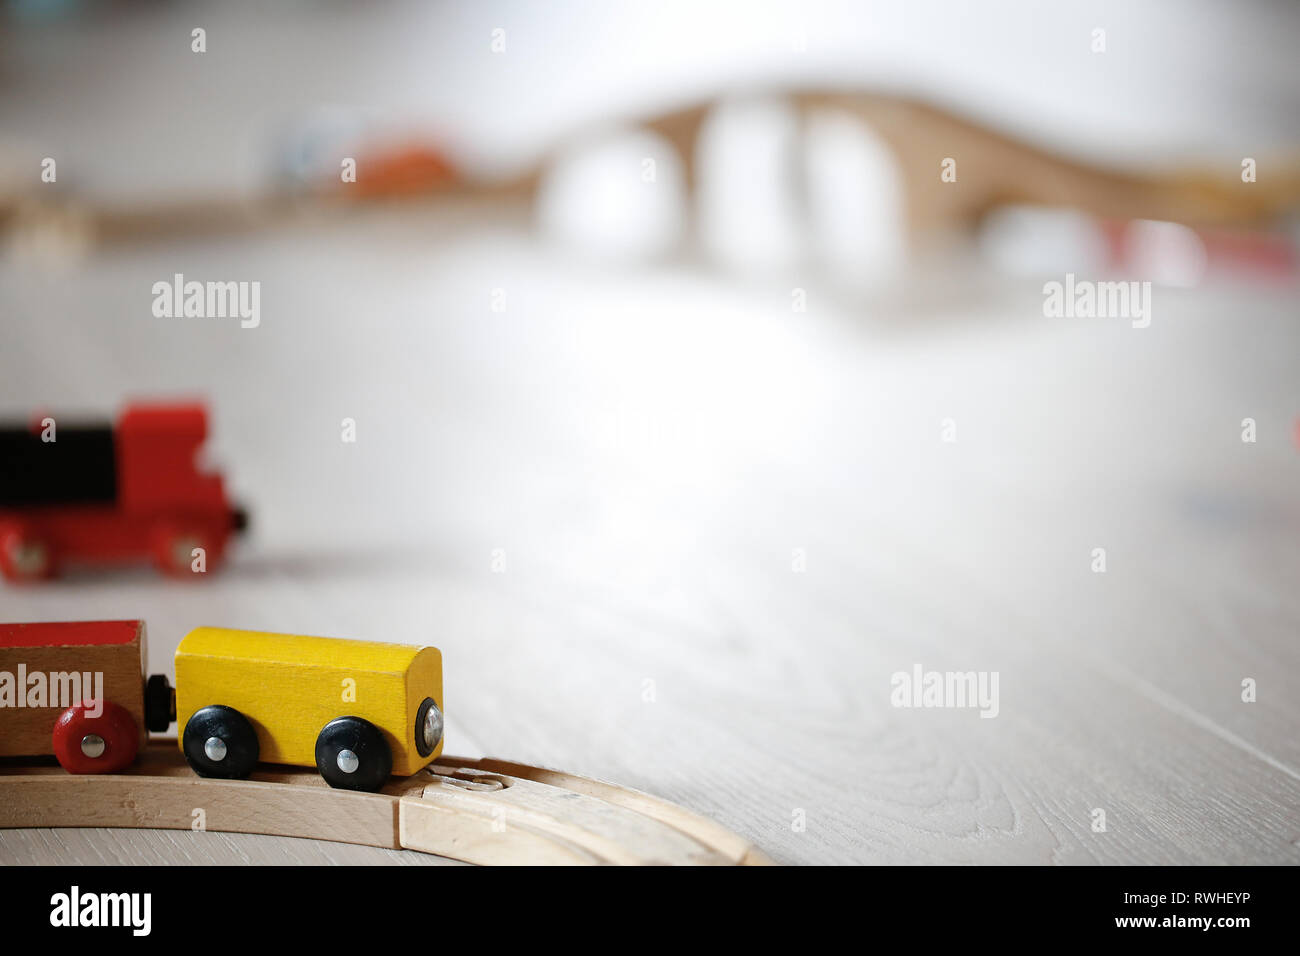 Toy Train Track Stock Photos & Toy Train Track Stock Images